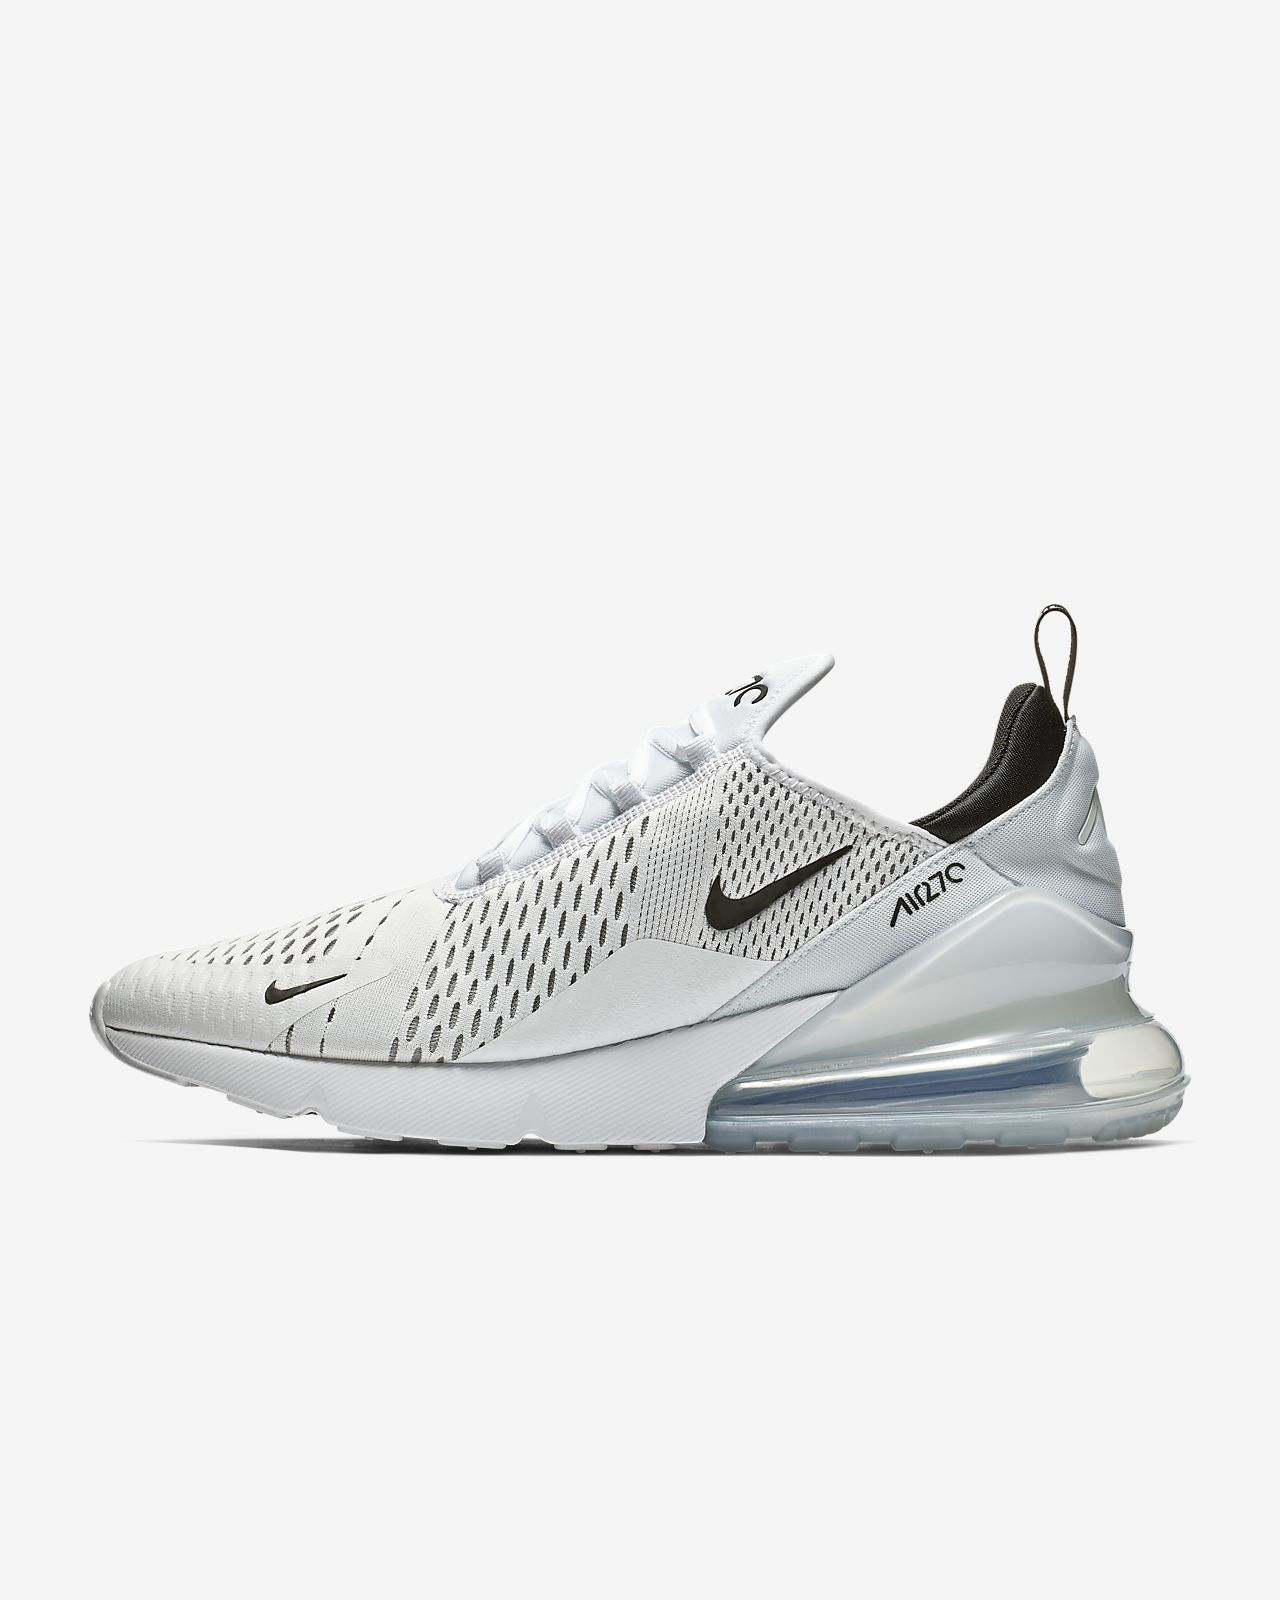 promo code 521ad 2c8f6 Nike Air Max 270 Men's Shoe. Nike.com GB